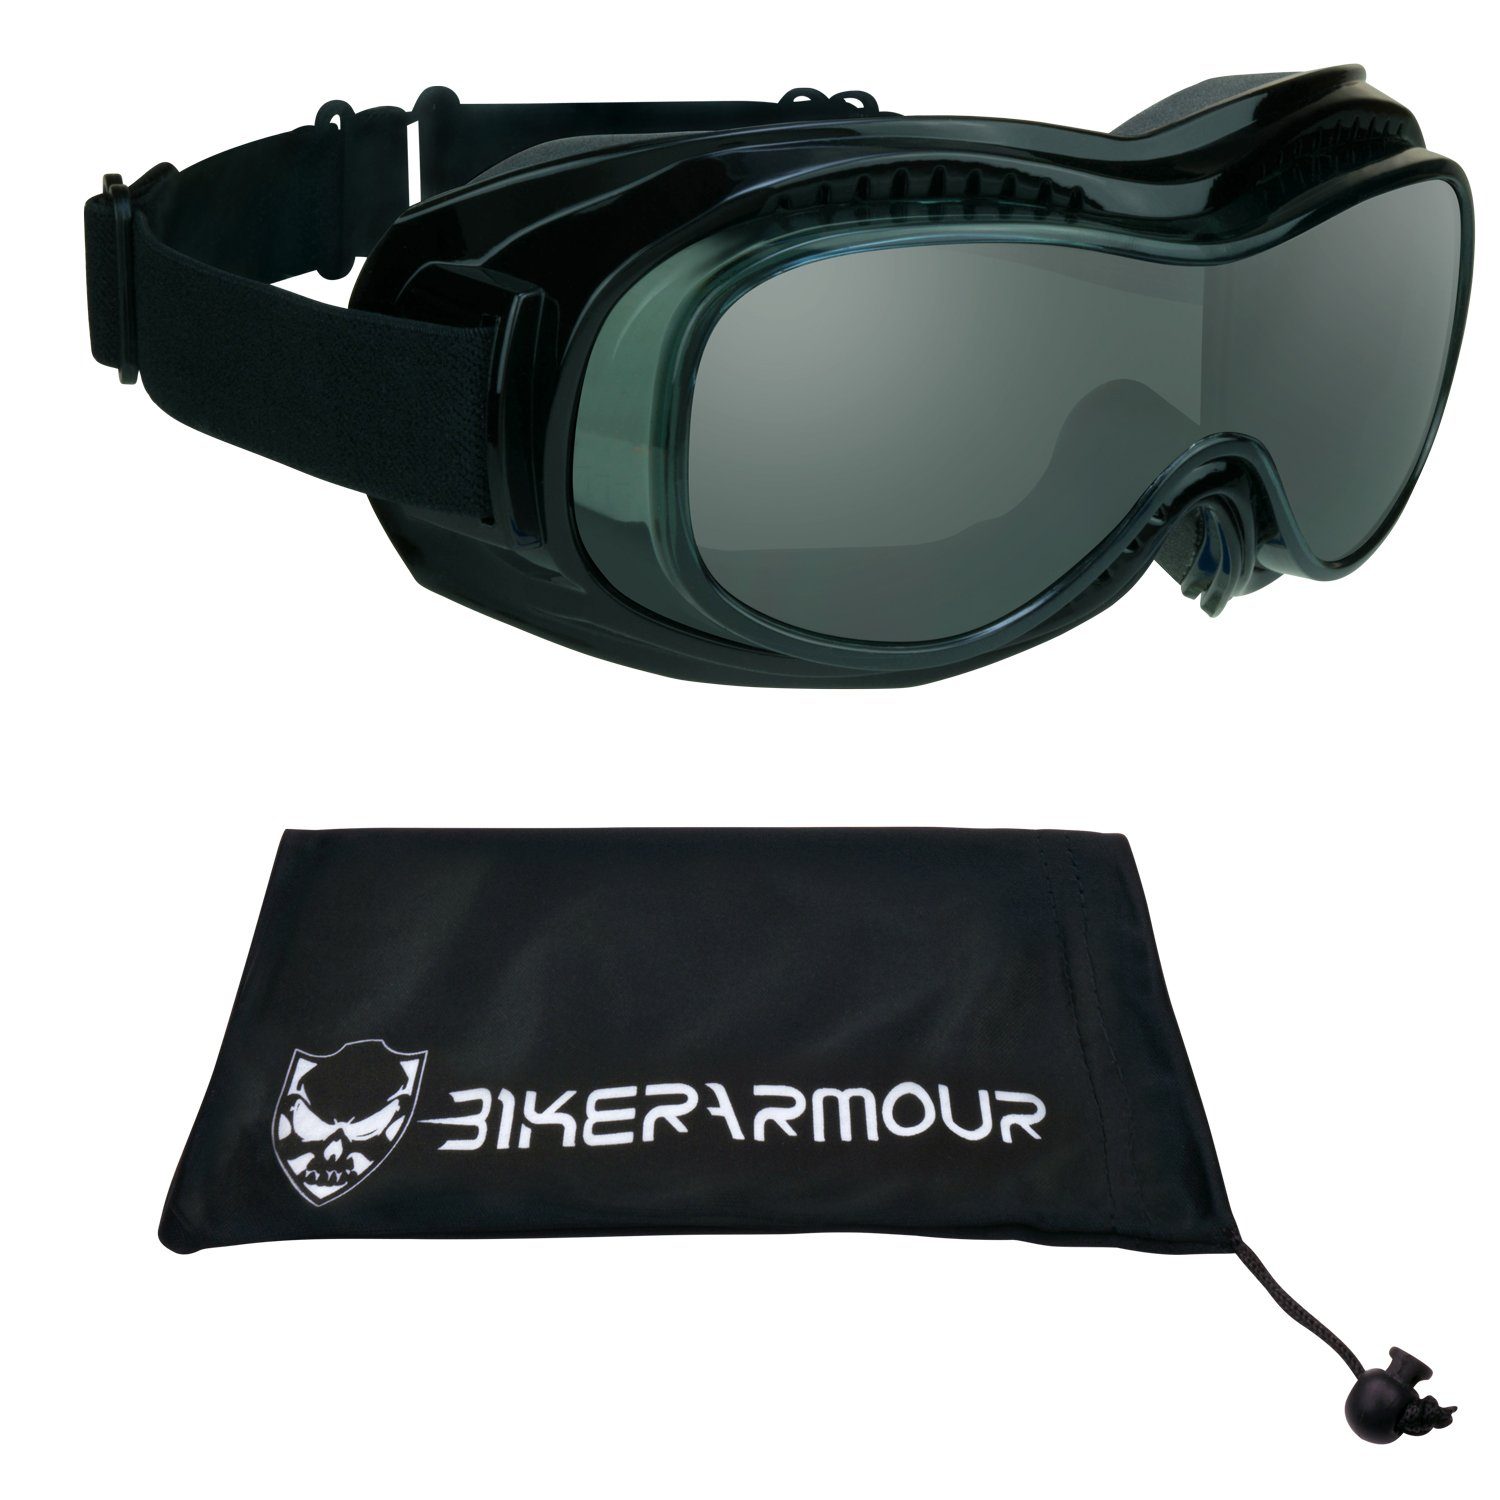 Motorcycle Safety Goggles Over Rx Prescription Glasses, Black Frames, Dual Foam